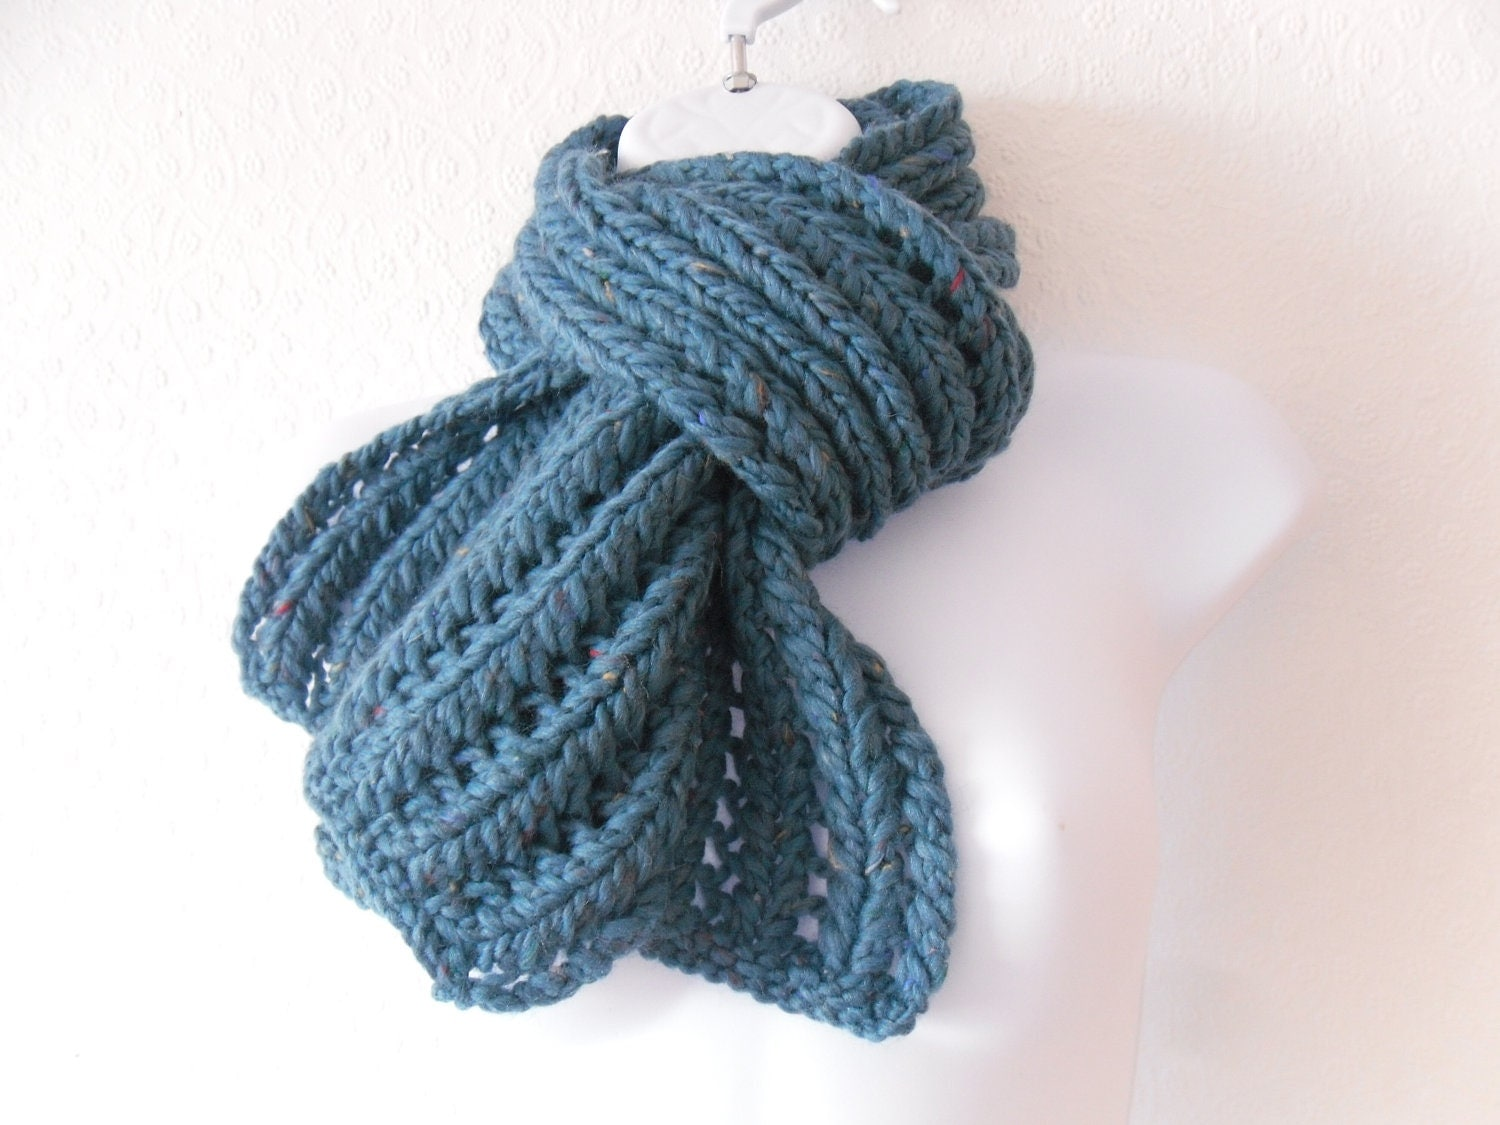 "Chunky hand knitted womens scarf Turquoise 80% wool tweed flecks 5' 8"" long 7"" wide - TheFeminineTouch"